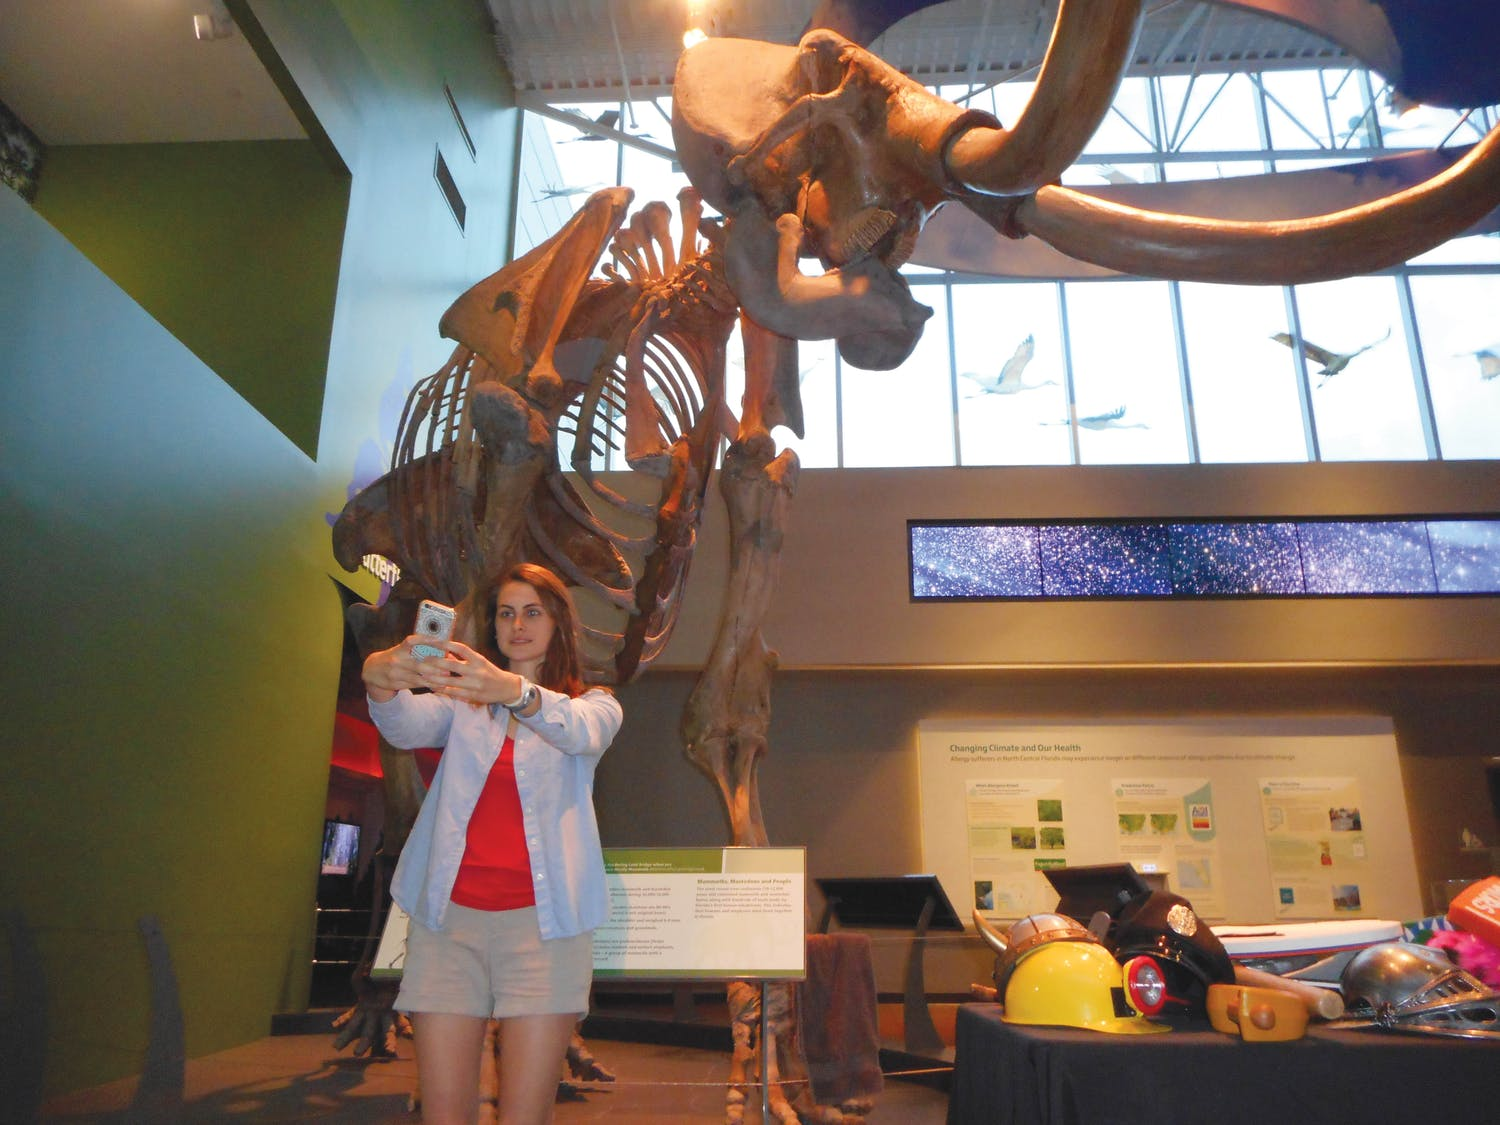 """Jaime Benedict, a 20-year-old UF nursing junior, snaps a selfie in front of the mammoth skeleton at the Florida Museum of Natural History during """"Museum Selfie Day."""""""